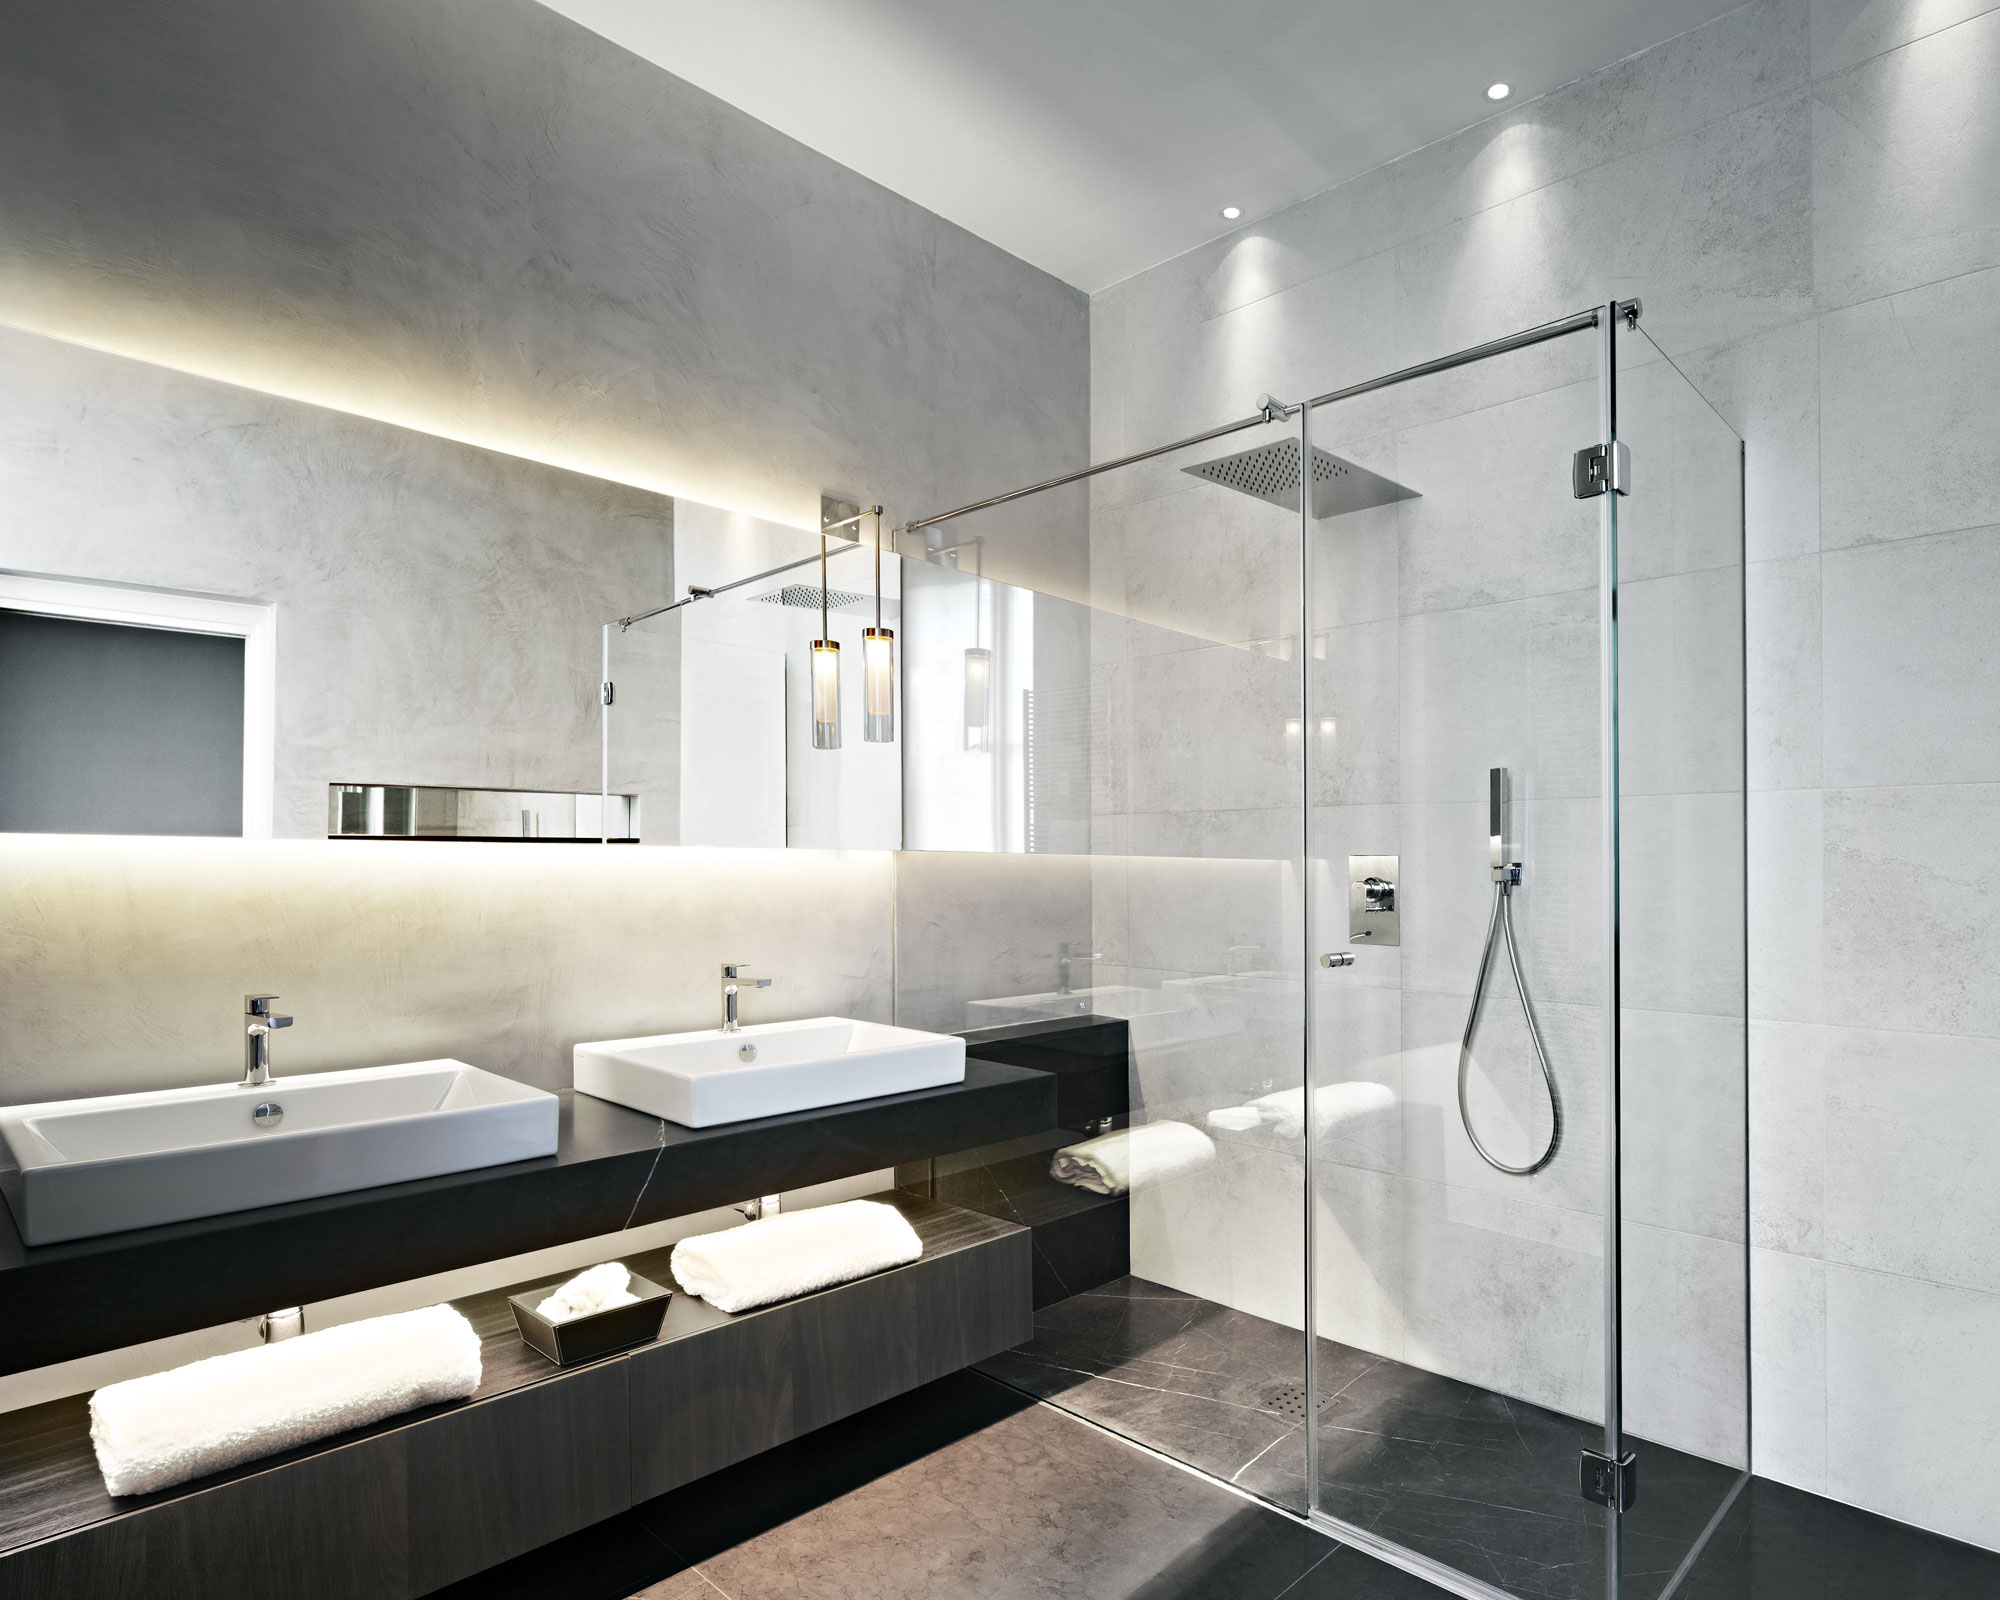 Led Bathroom Lighting Ideas Ways To Keep Your Bathing Space Light And Bright Homes Gardens